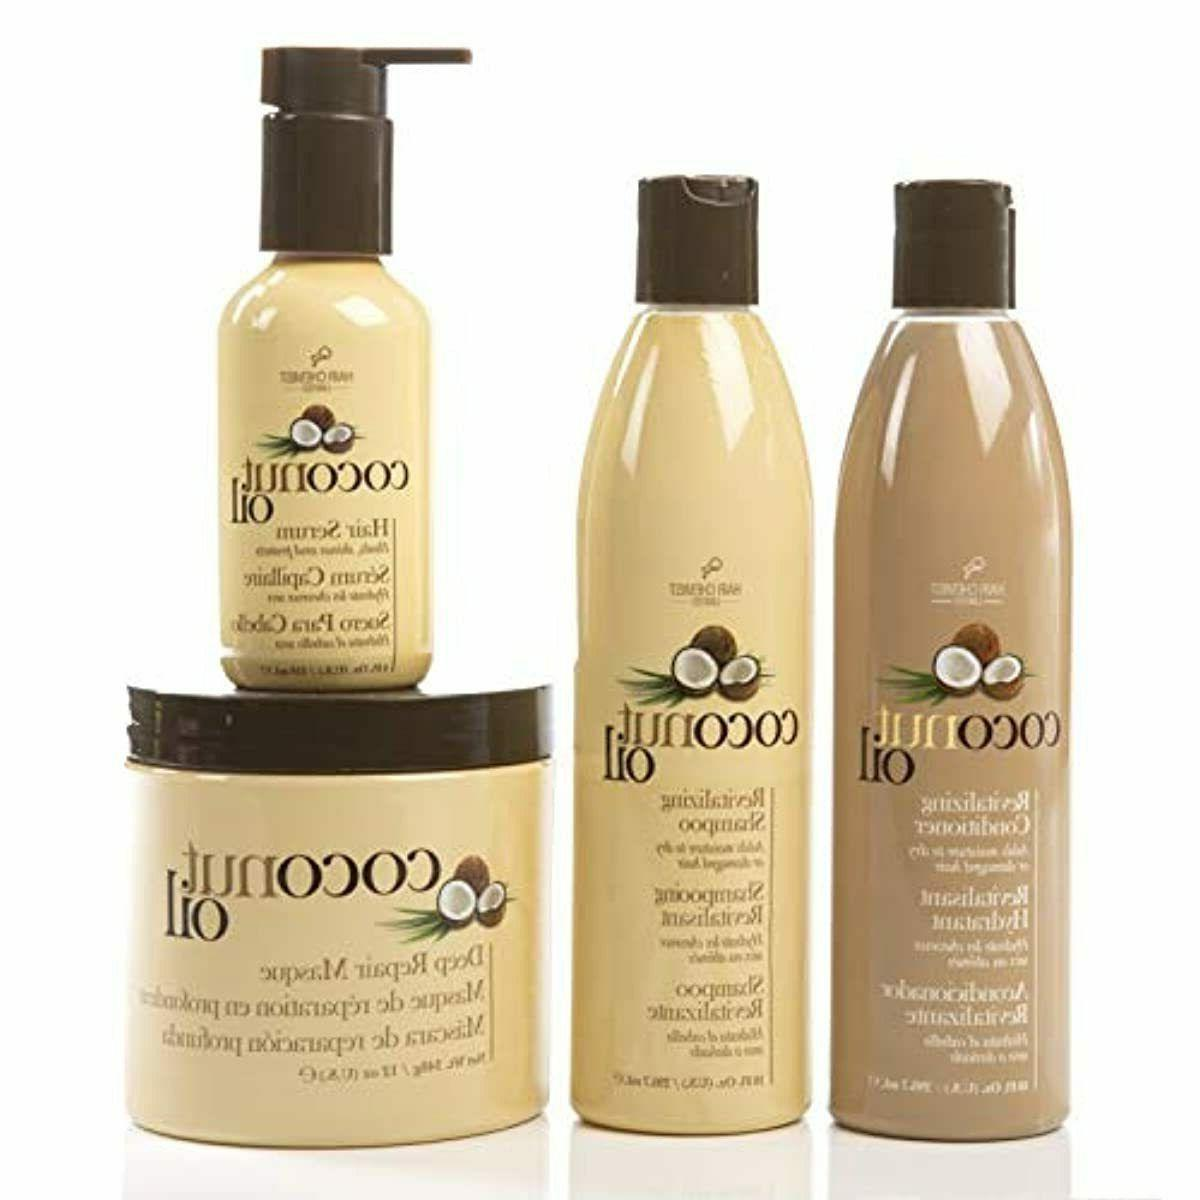 coconut oil deluxe care collection